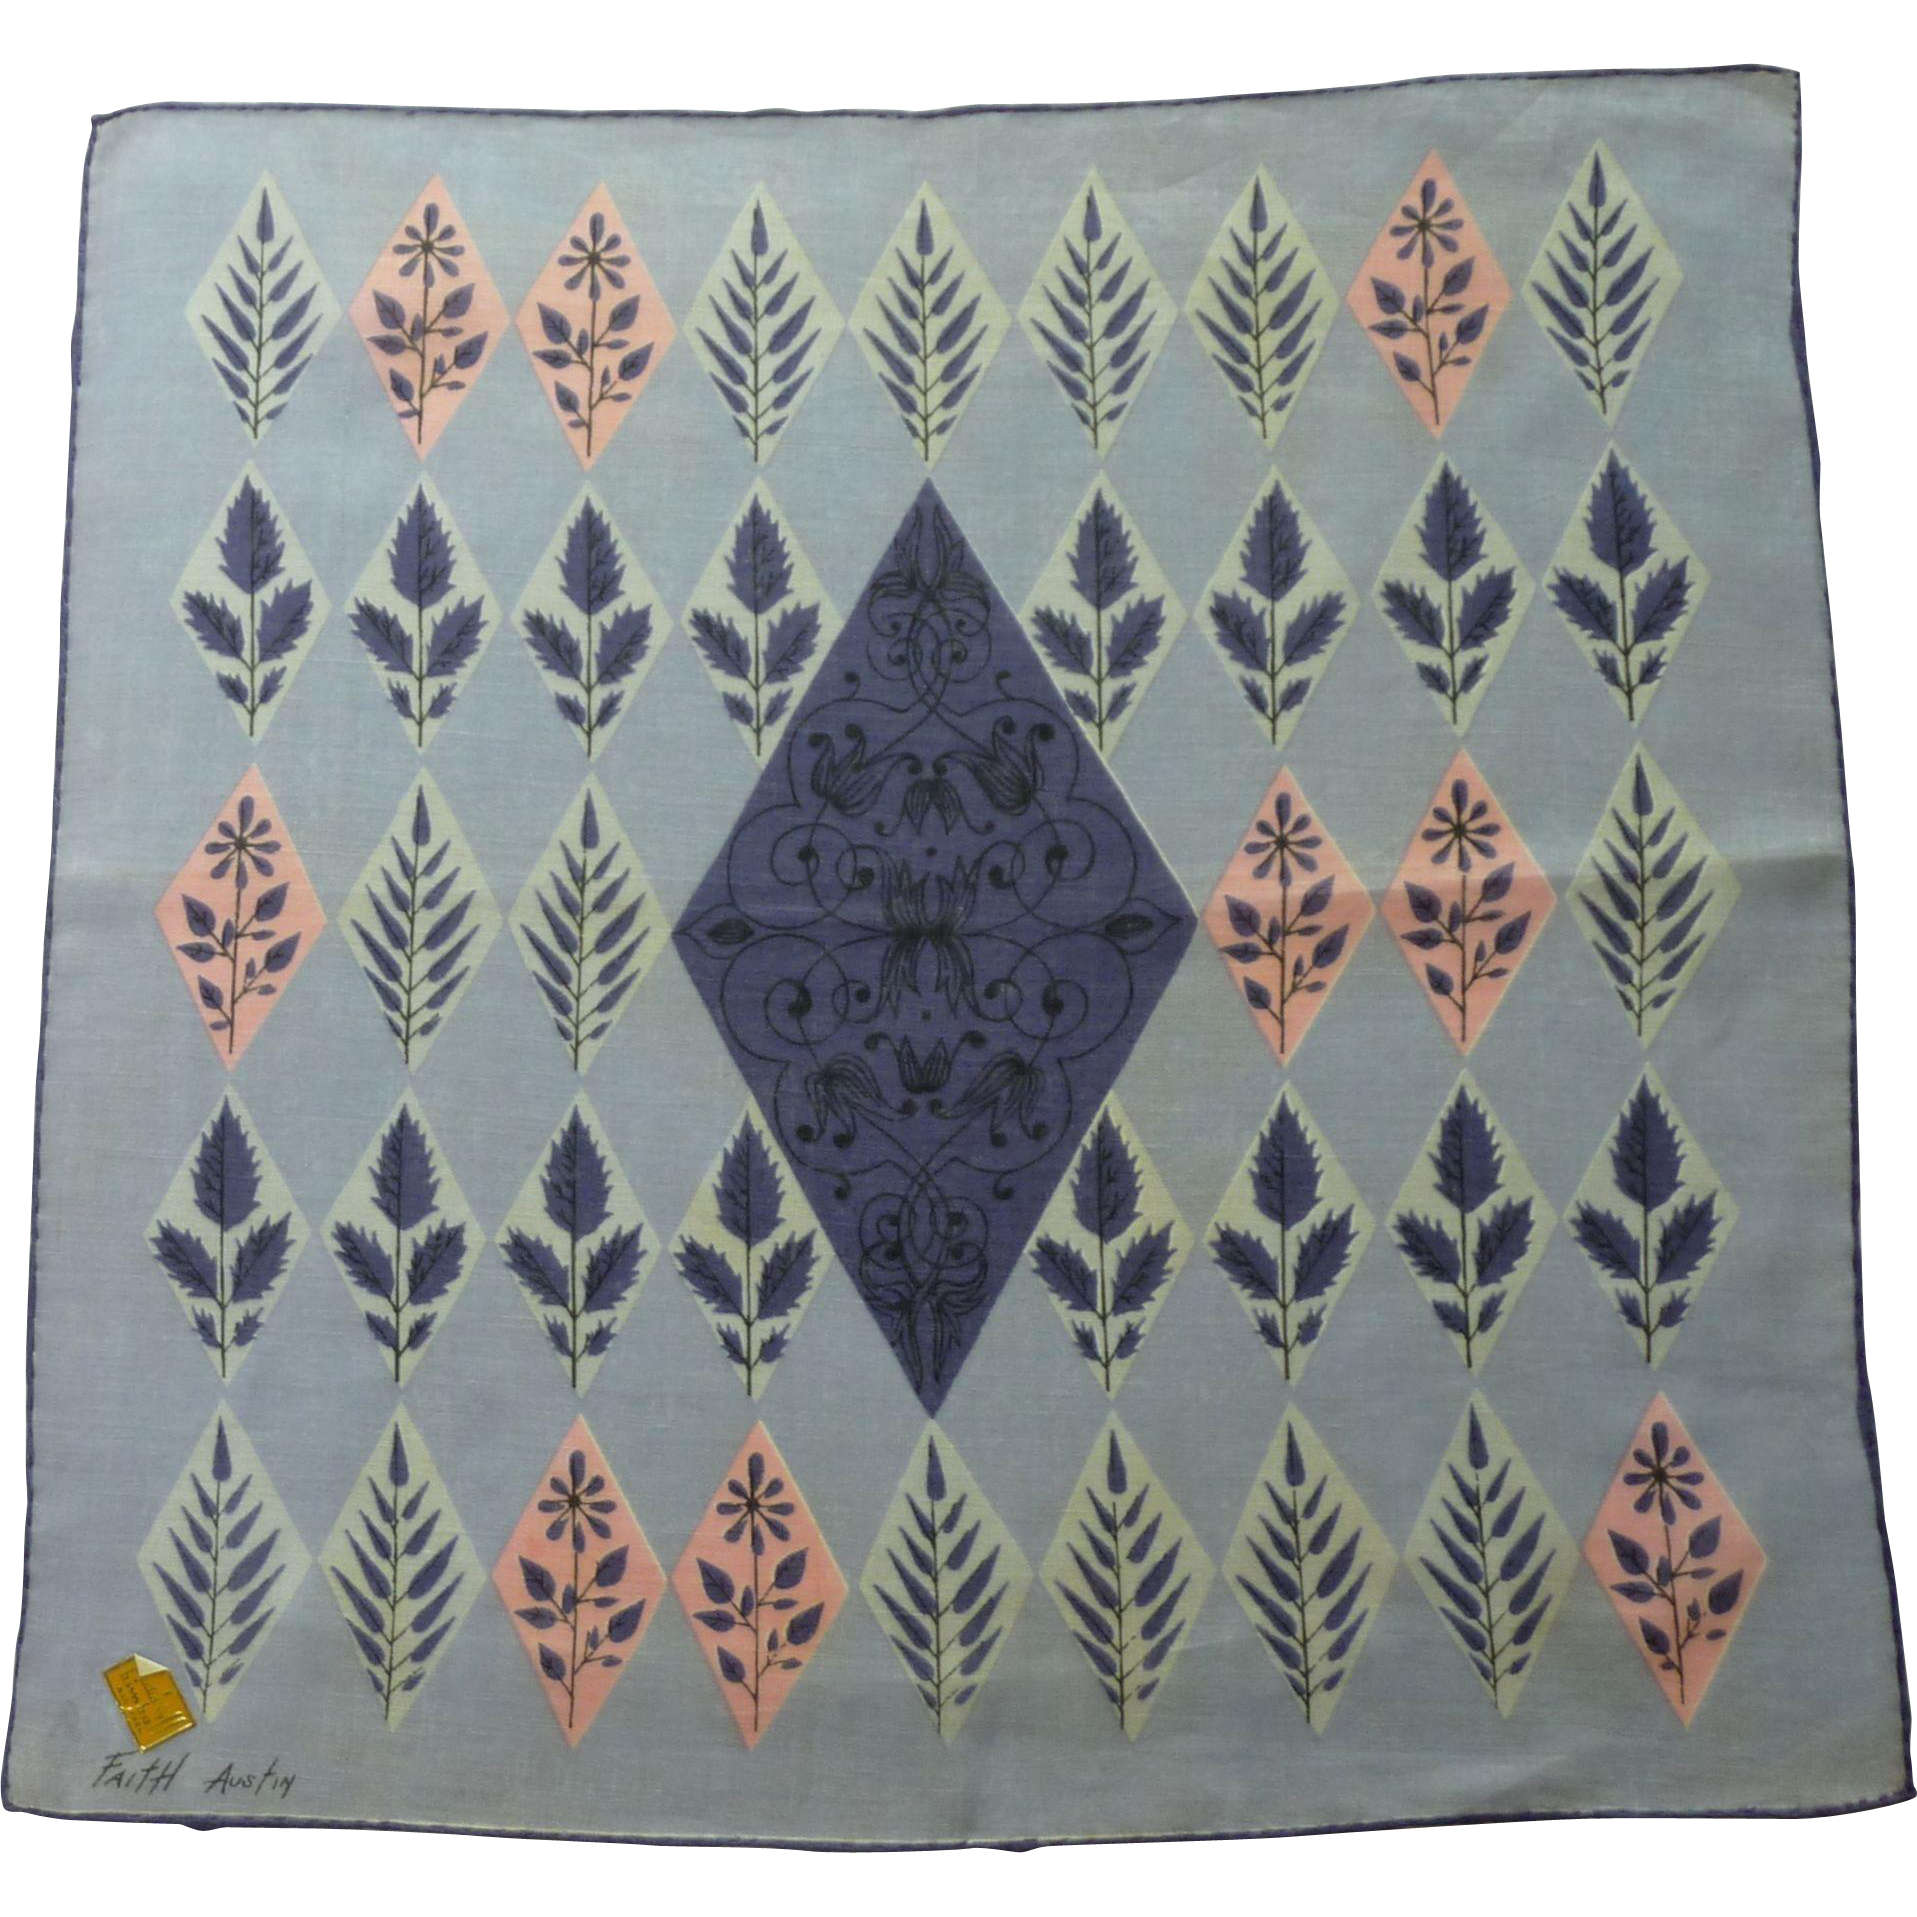 Faith Austin Linen Purple / Pink Leaf Handkerchief